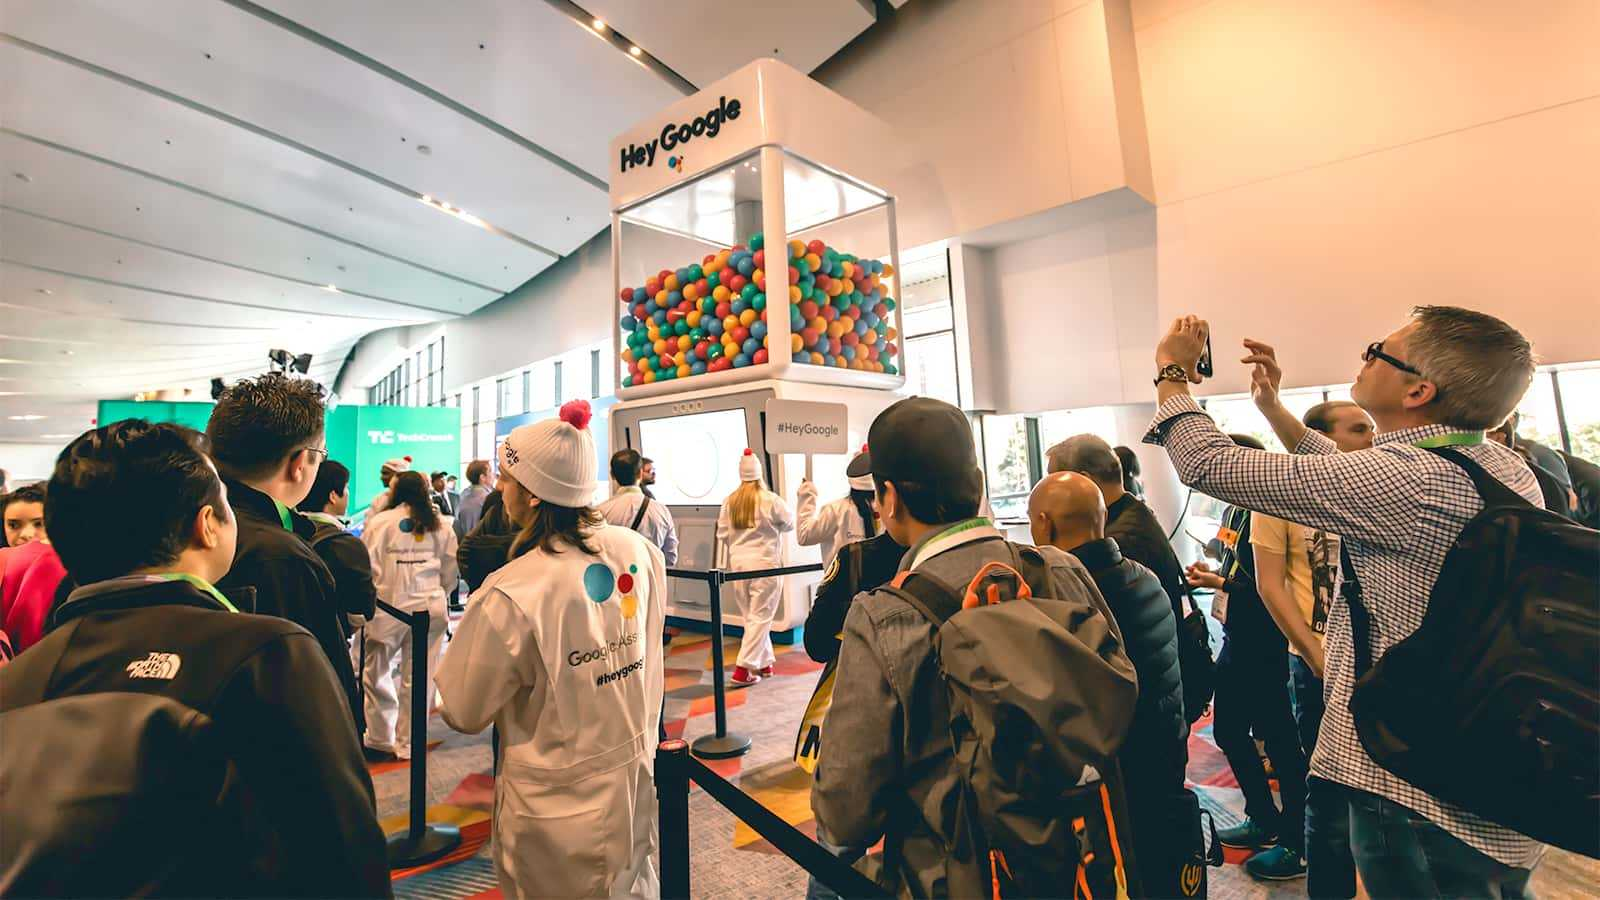 Attendees in line at a Google Assistant Gumball Machine at the Google CES 2018 experience.